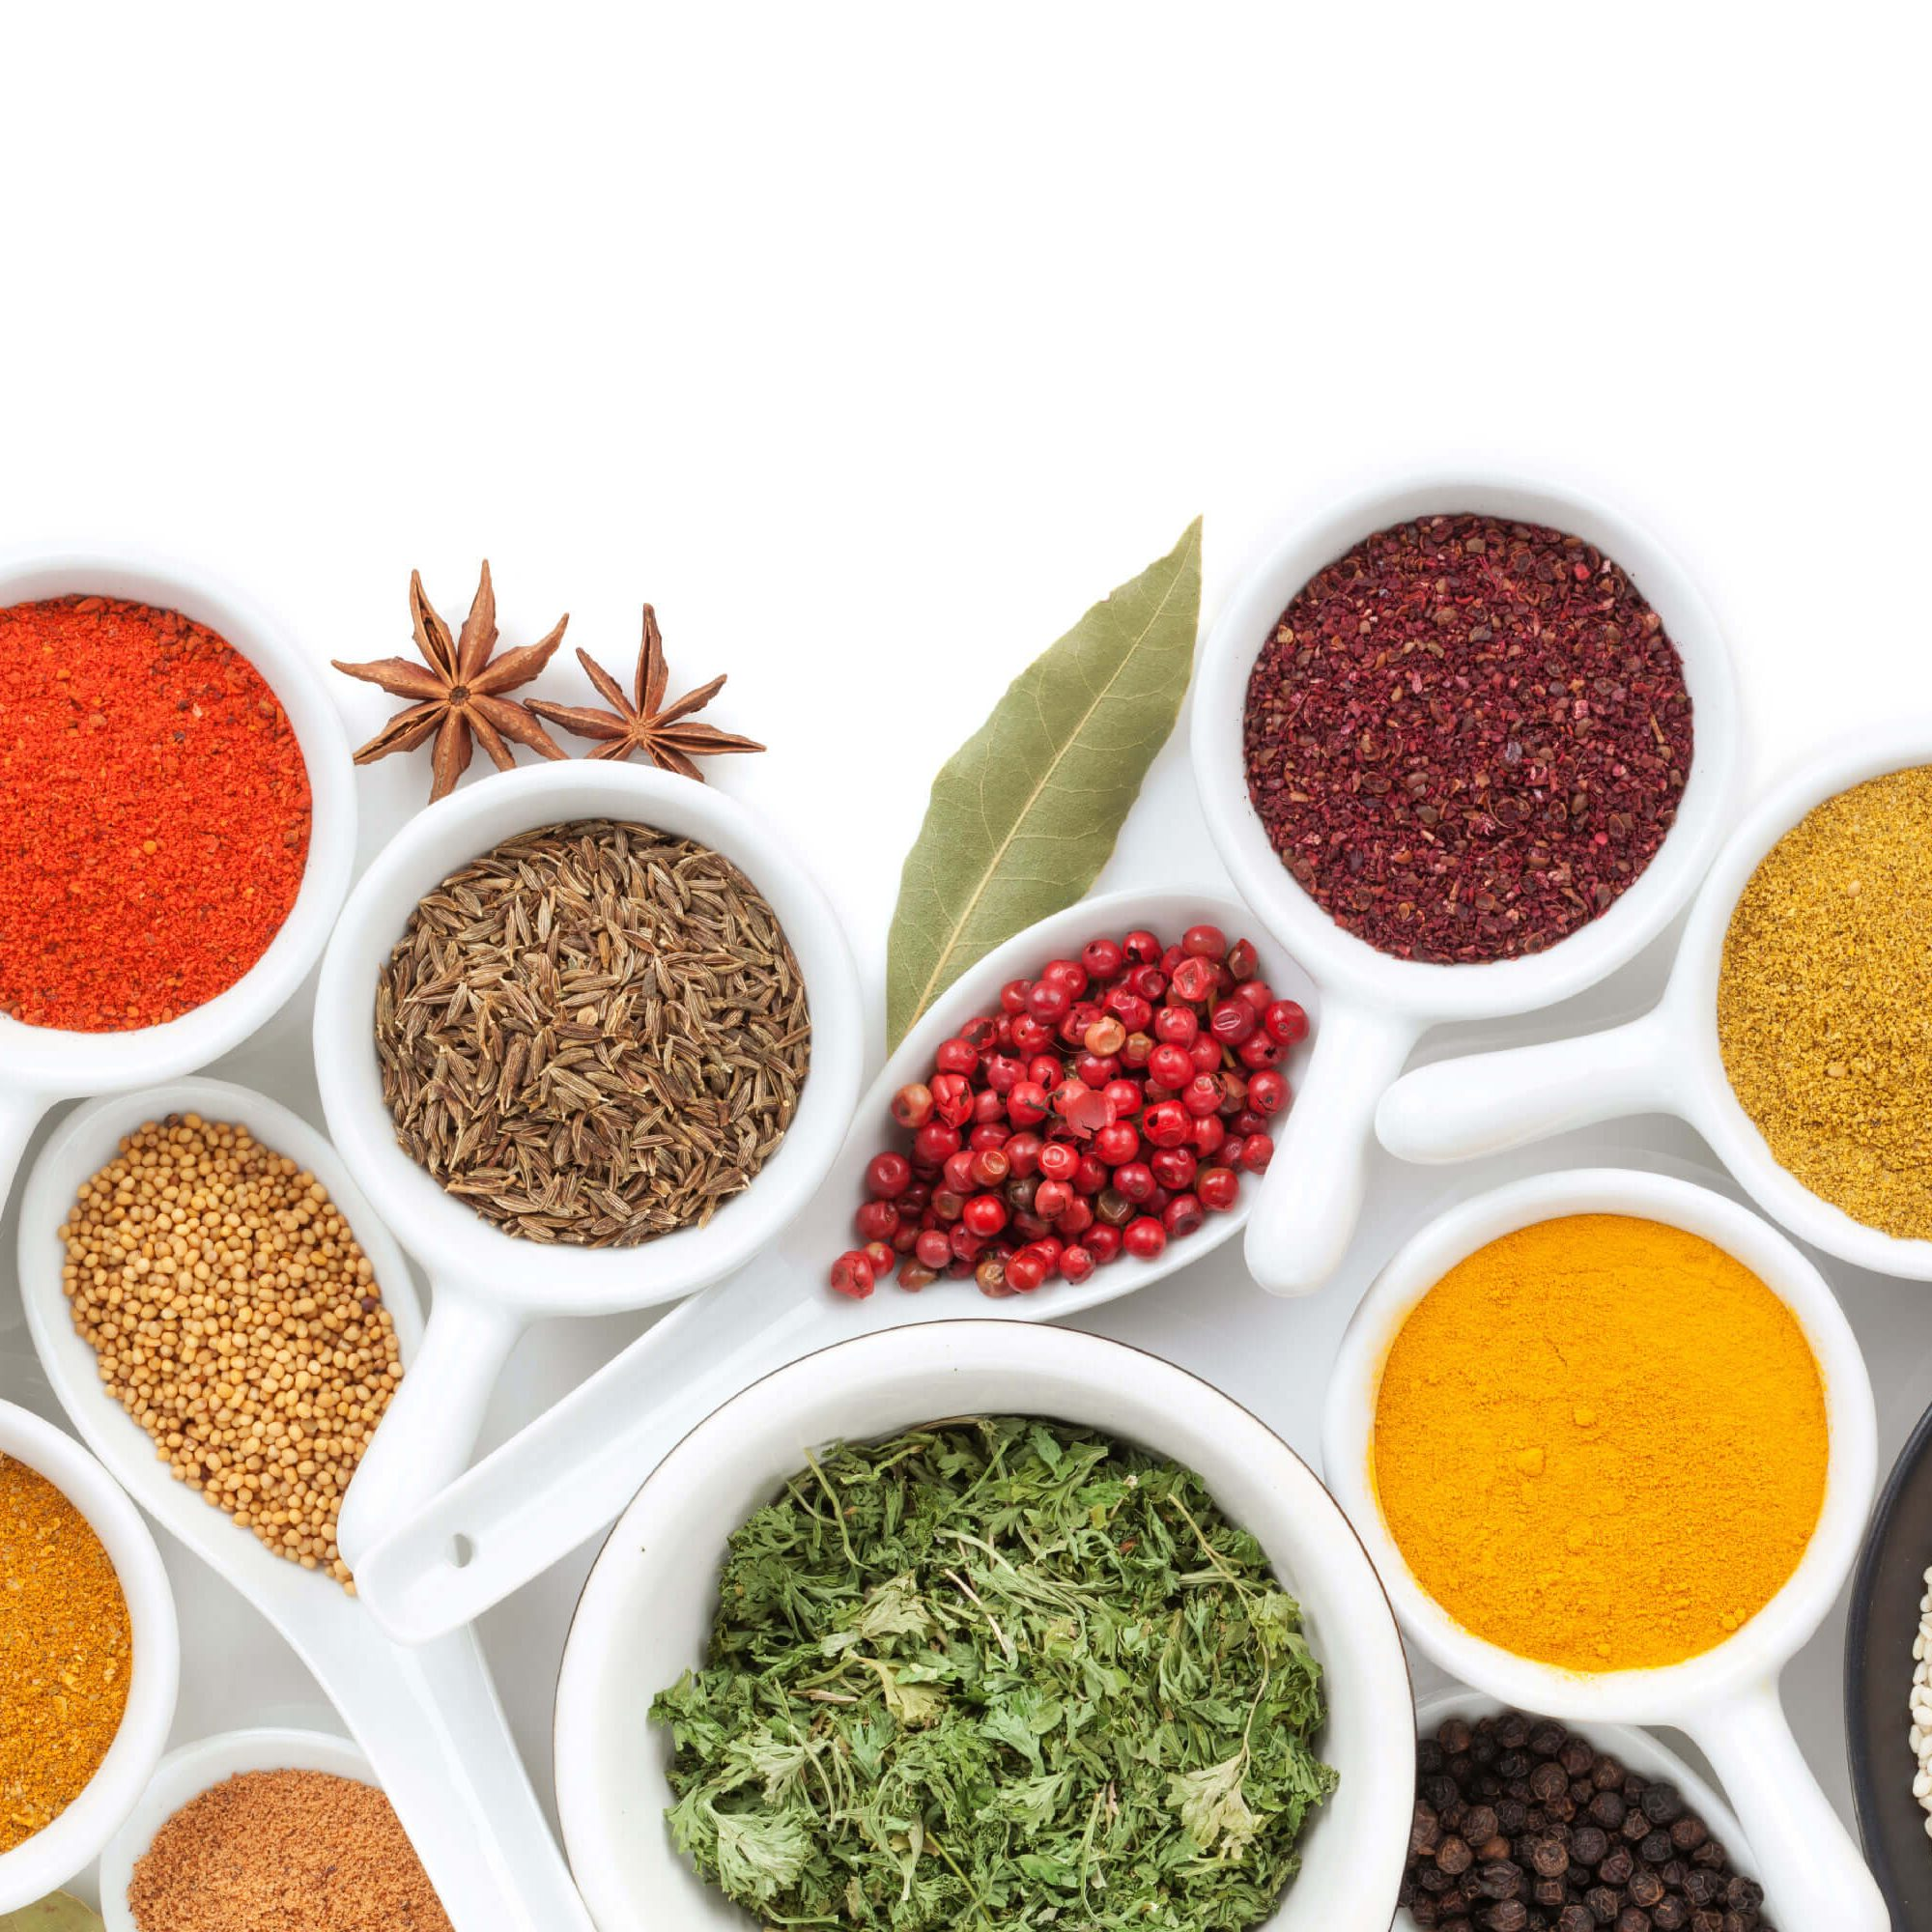 High-quality-organics-spices-home-page-background